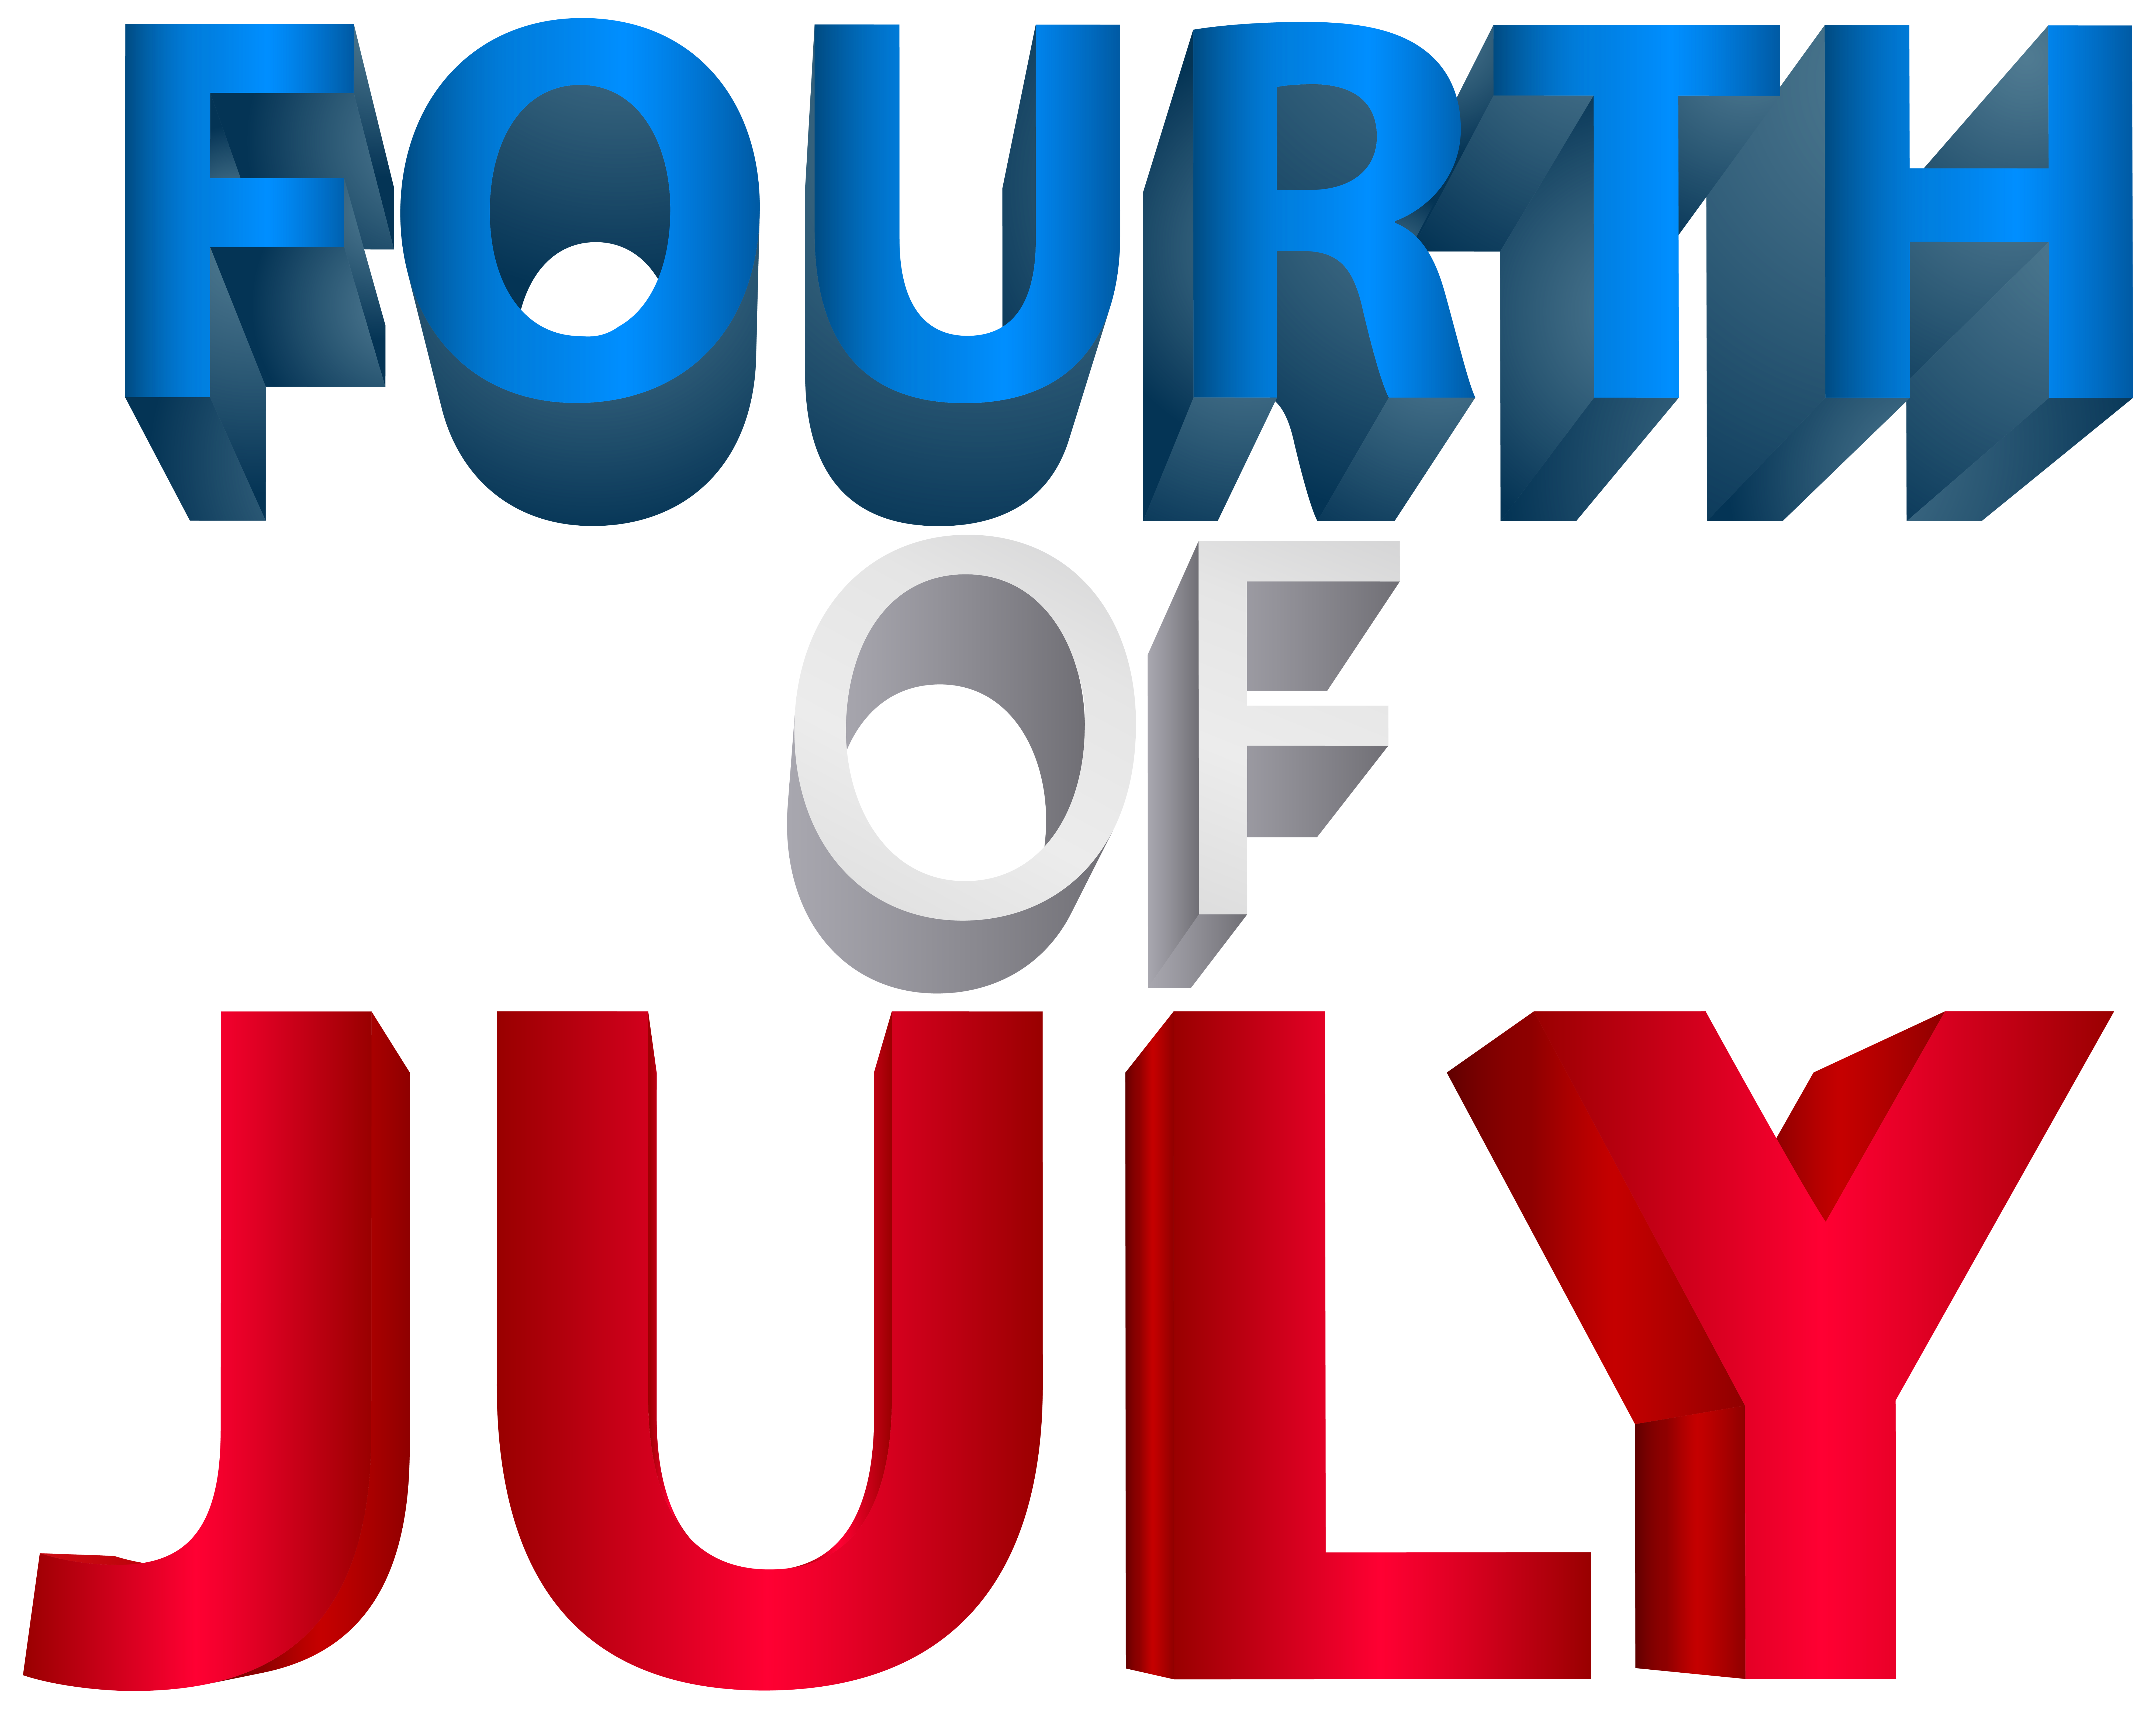 Free transparent fourth of july baking clipart png royalty free stock Fourth of July Transparent PNG Clip Art Image | Gallery ... png royalty free stock